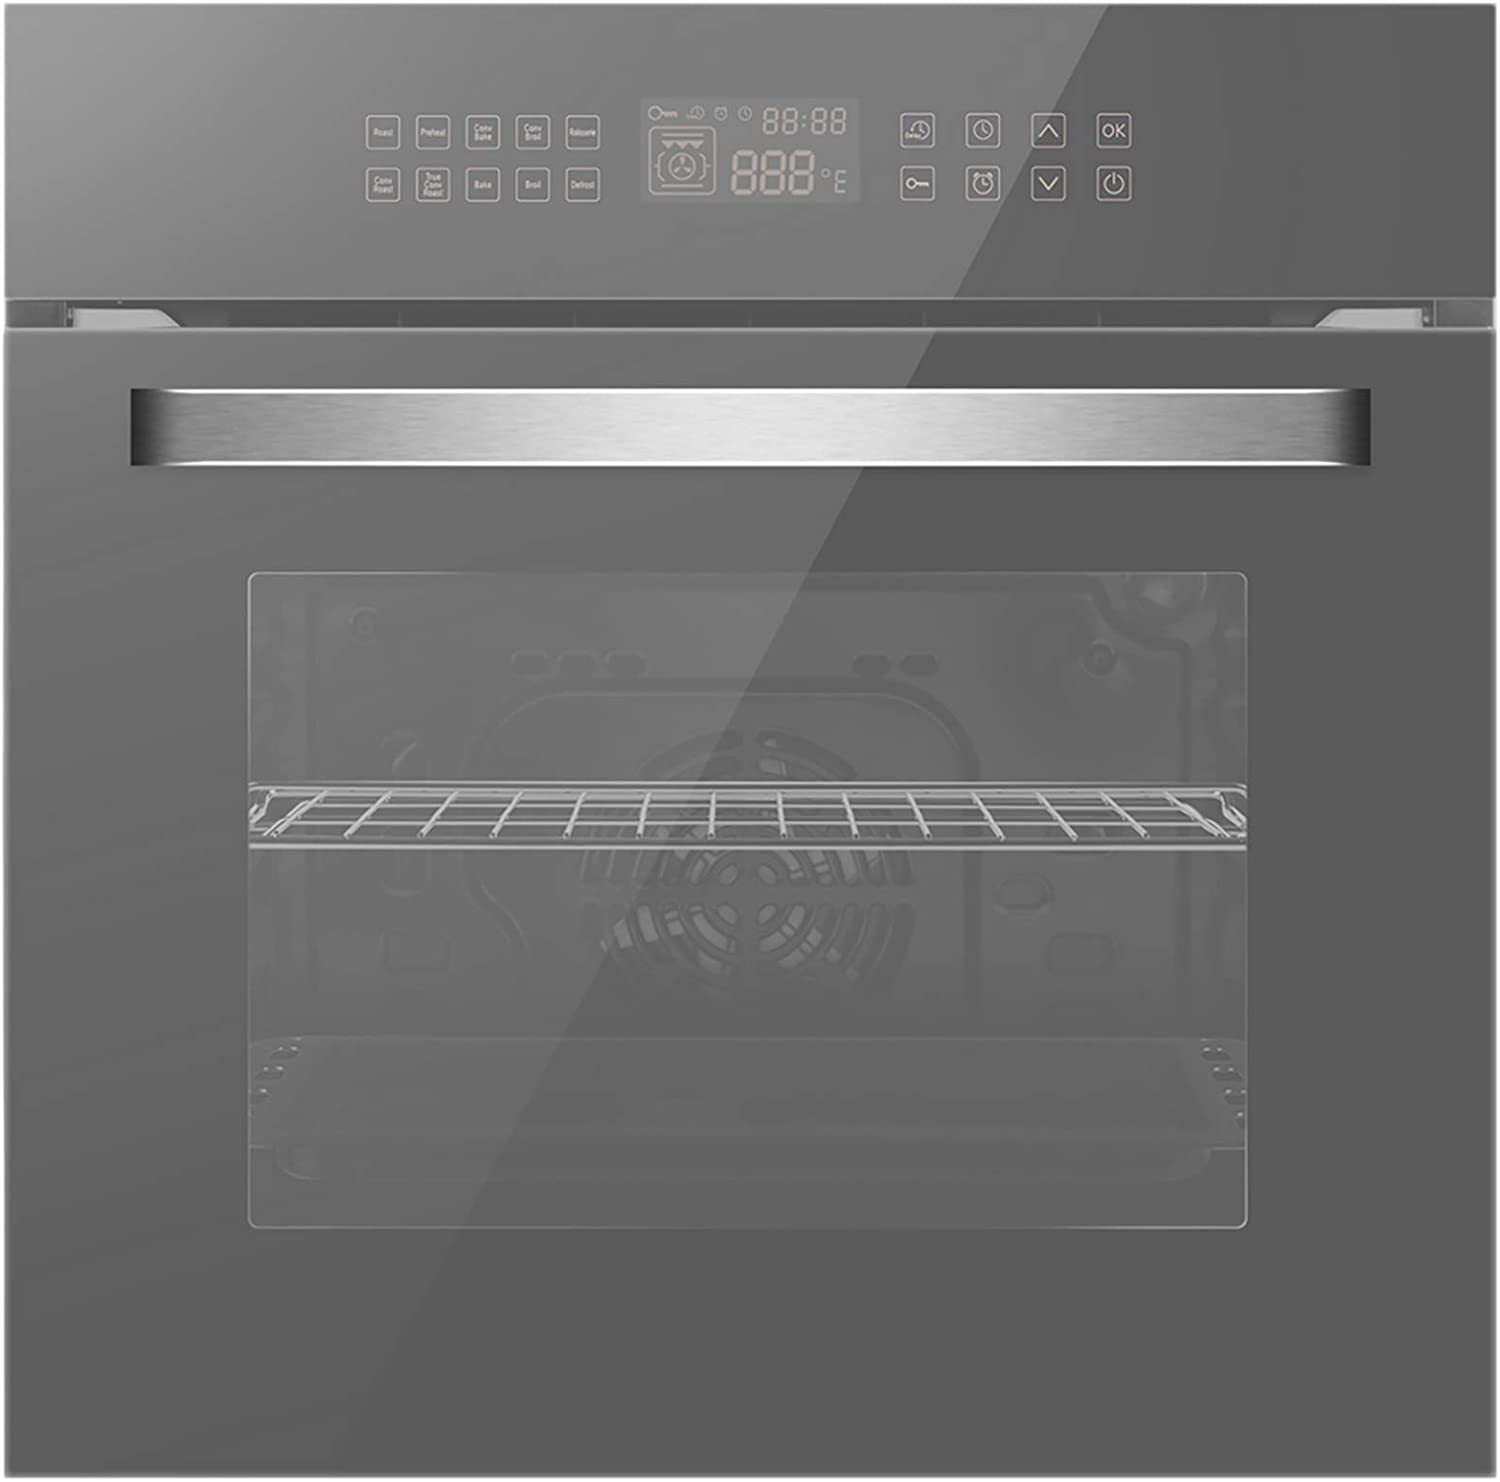 Empava 24 Electric Convection Single Wall Oven 10 Cooking Functions Deluxe 360 ROTISSERIE with Sensitive Touch Control in Silver Mirror Glass EMPV-SOC17, SOC17